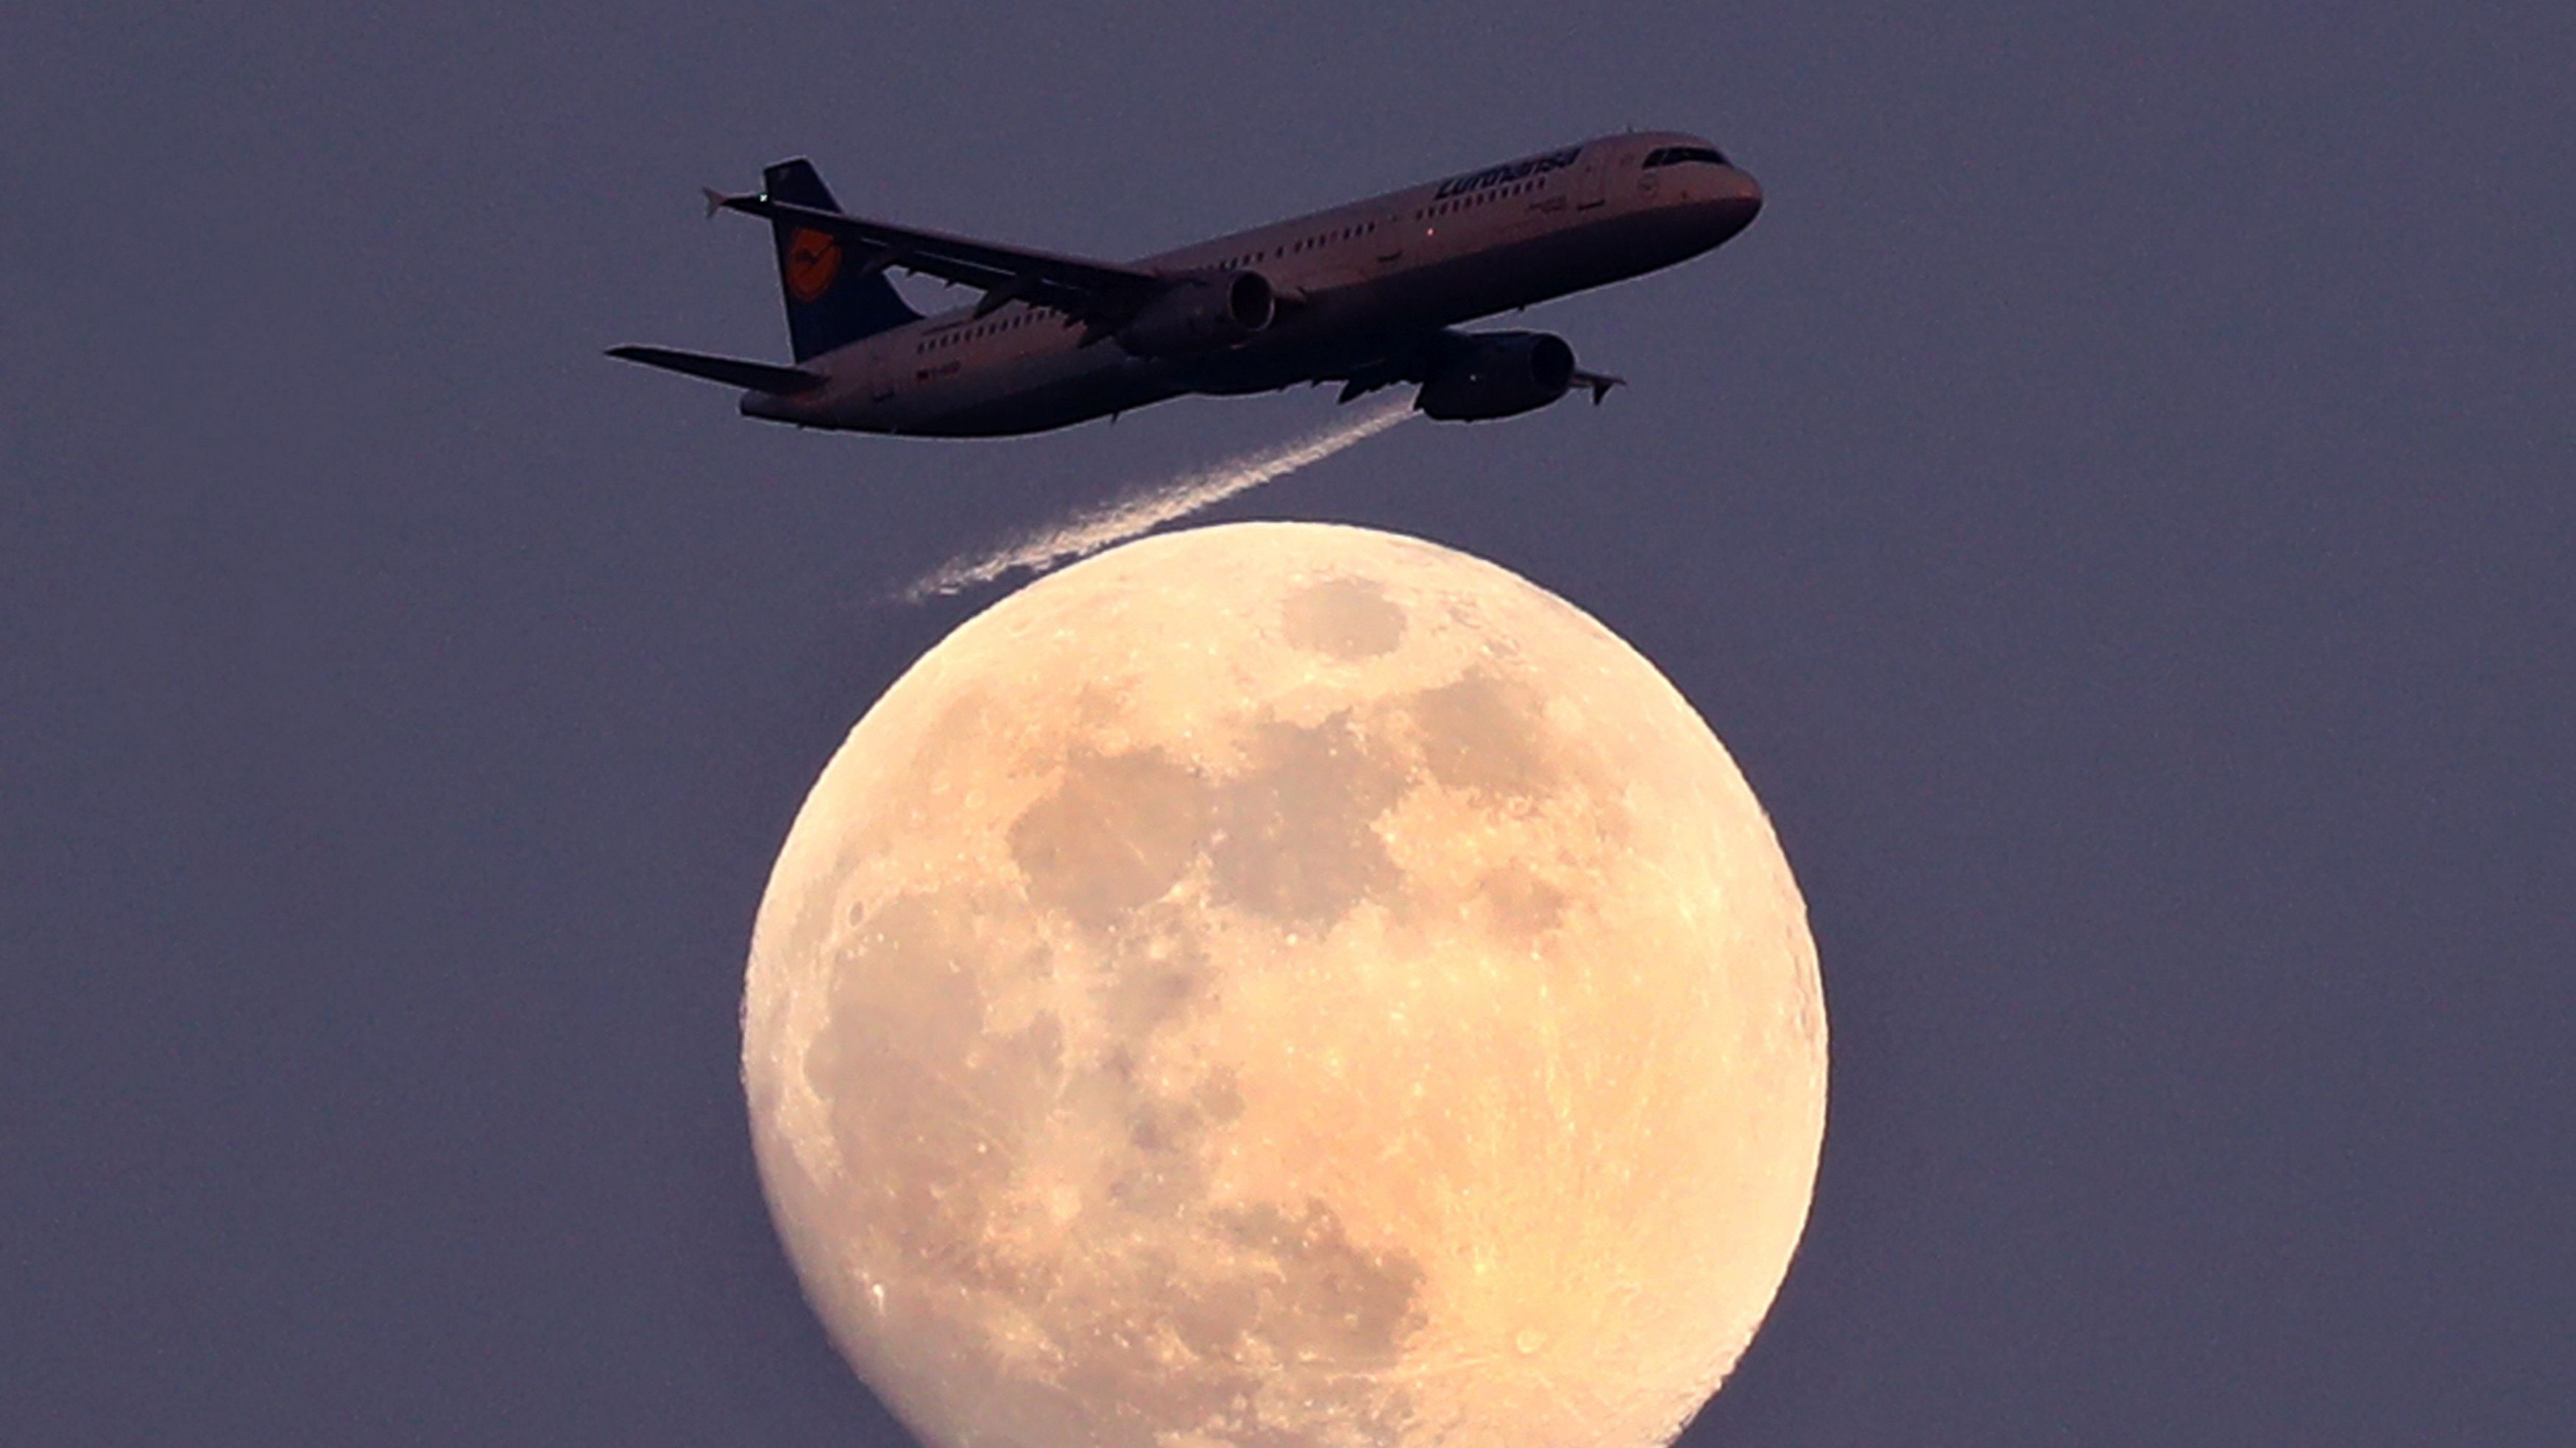 An airplane of German air carrier Lufthansa passes the moon over Frankfurt, Germany, April 9, 2017.